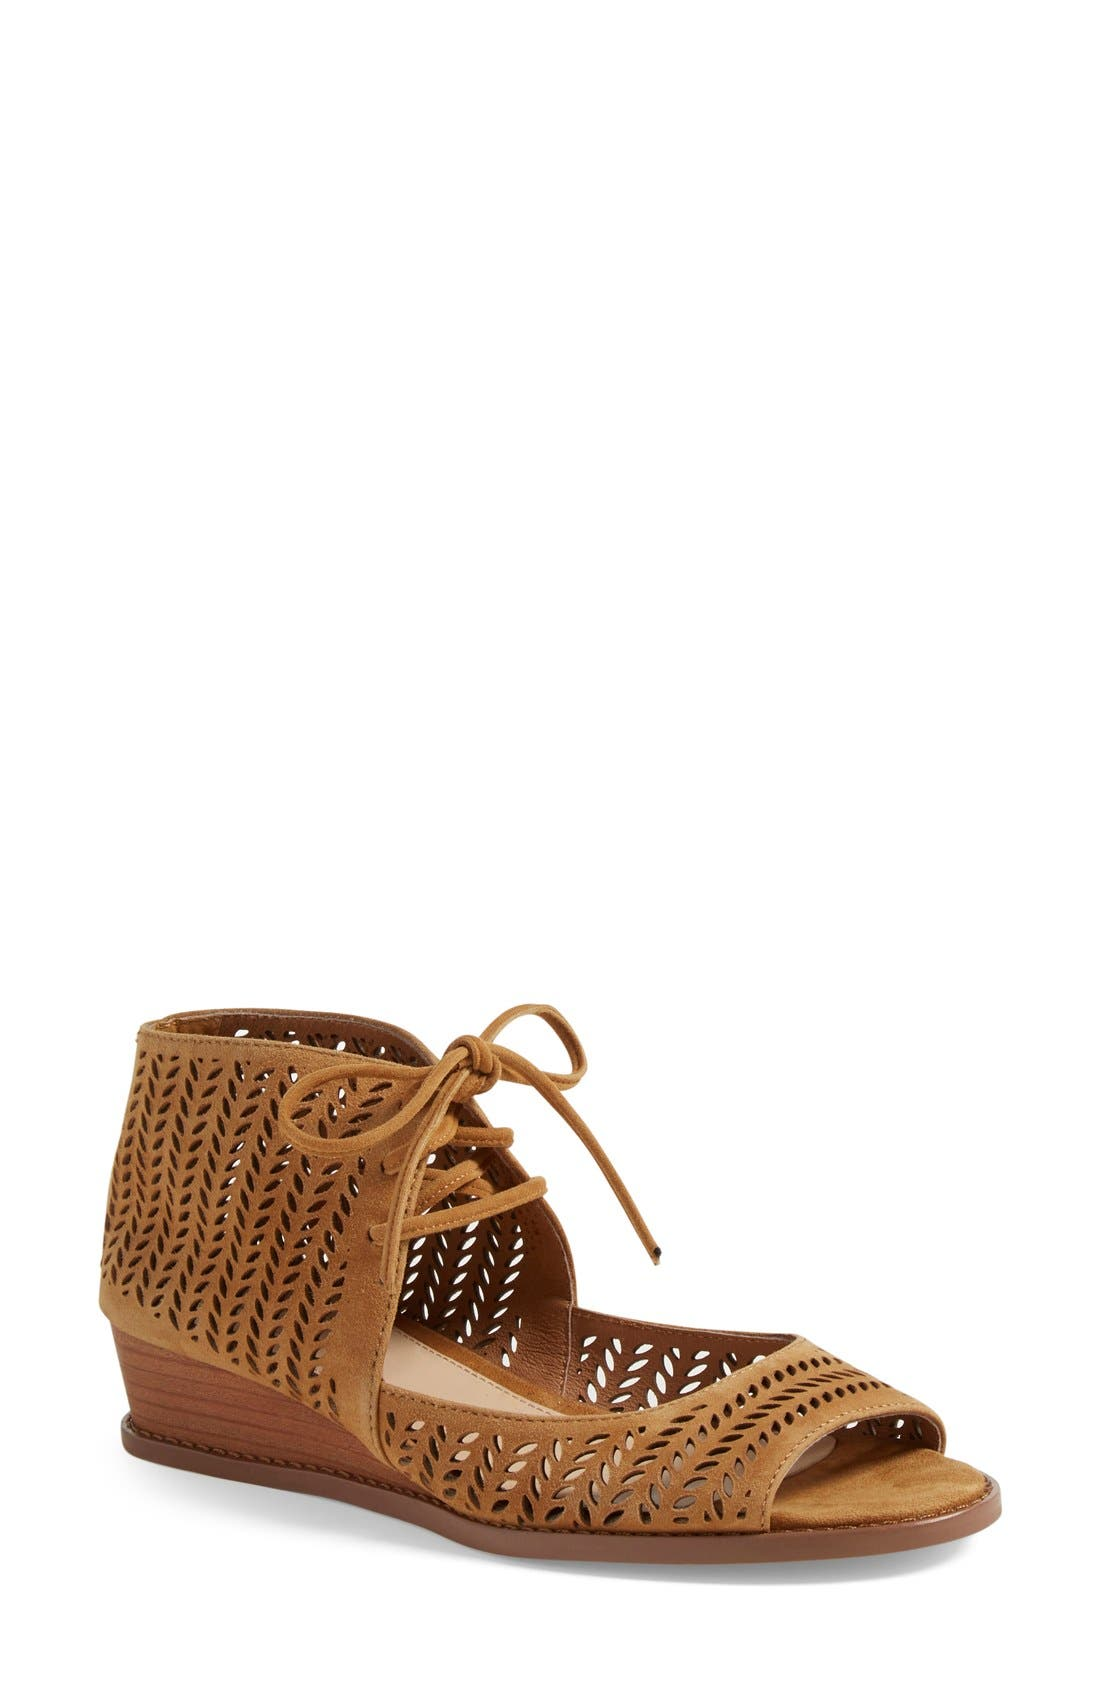 Alternate Image 1 Selected - Vince Camuto 'Remme' Cutout Lace-Up Wedge Sandal (Women) (Nordstrom Exclusive)